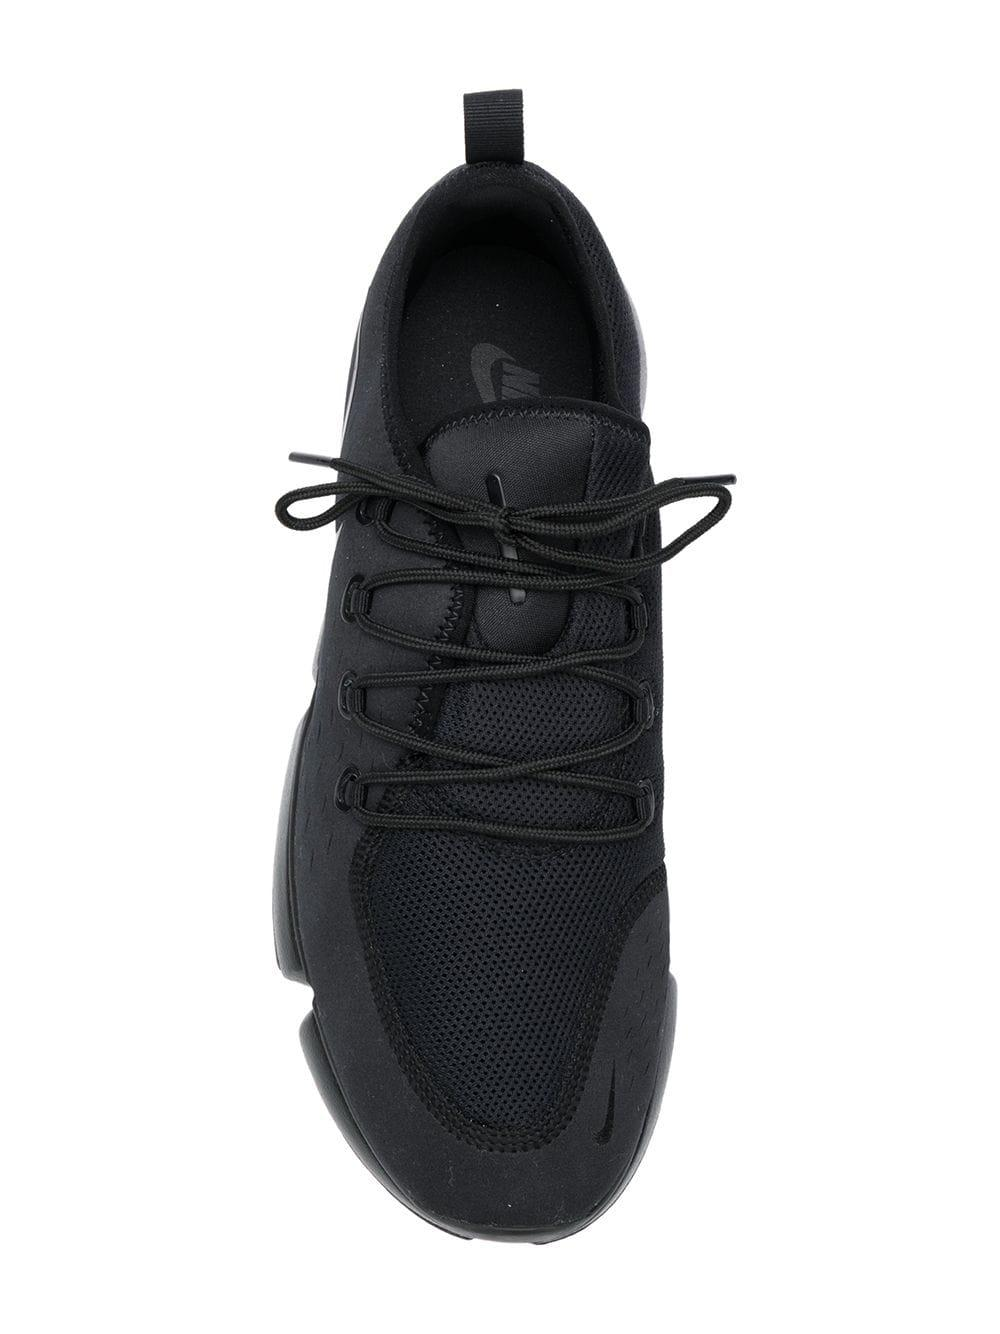 cad789cce9d8 Nike - Black Pocket Fly Dm Sneakers for Men - Lyst. View fullscreen